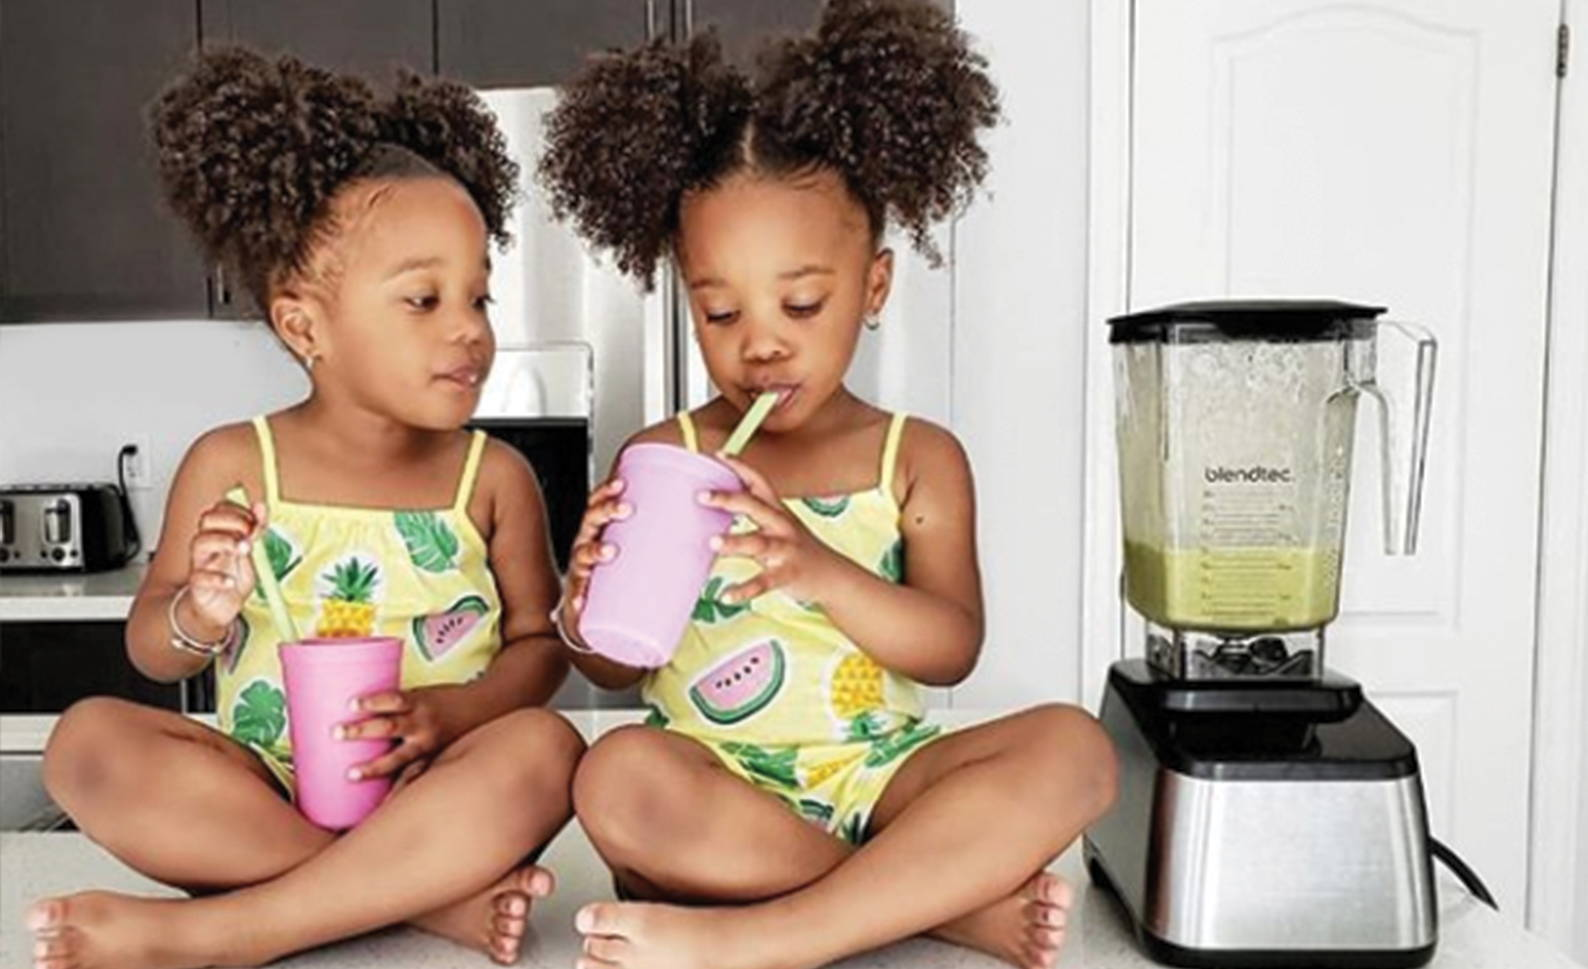 Girls Drinking Smoothie